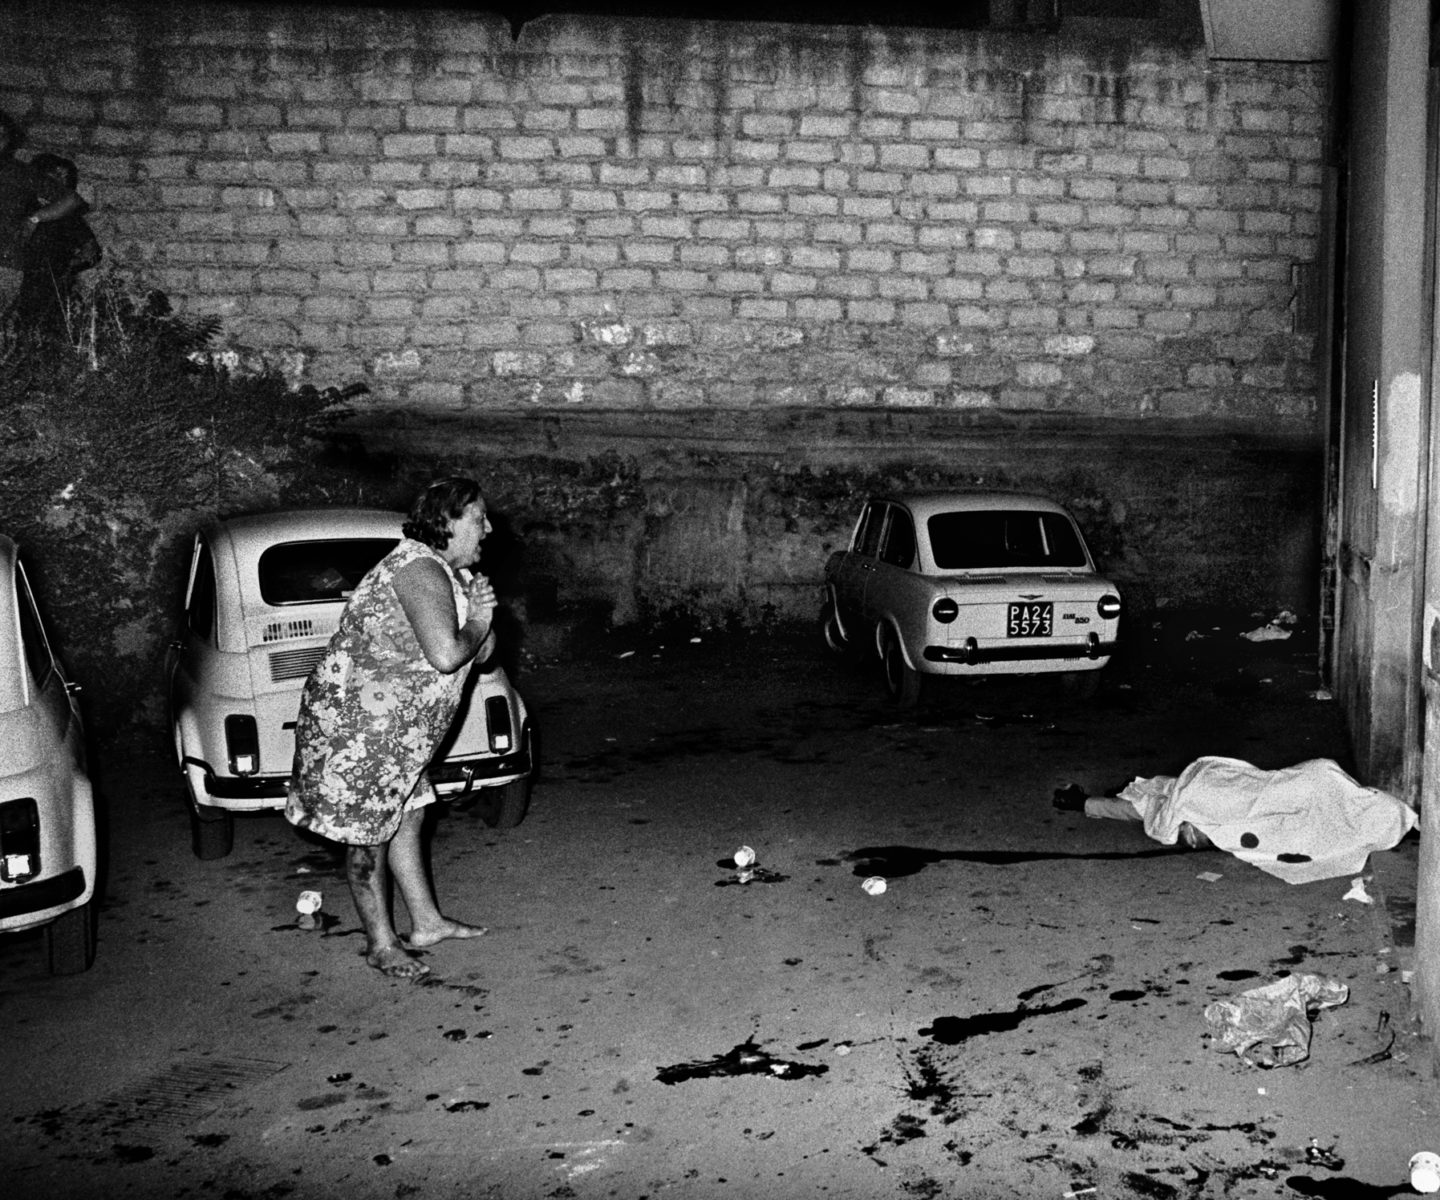 (EN) Film subject Letizia Battaglia's photo of a Mafia killing crime scene in Palermo in Shooting the Mafia, directed by Kim Longinotto. Photo credit: Letizia Battaglia. Courtesy of Lunar Pictures.